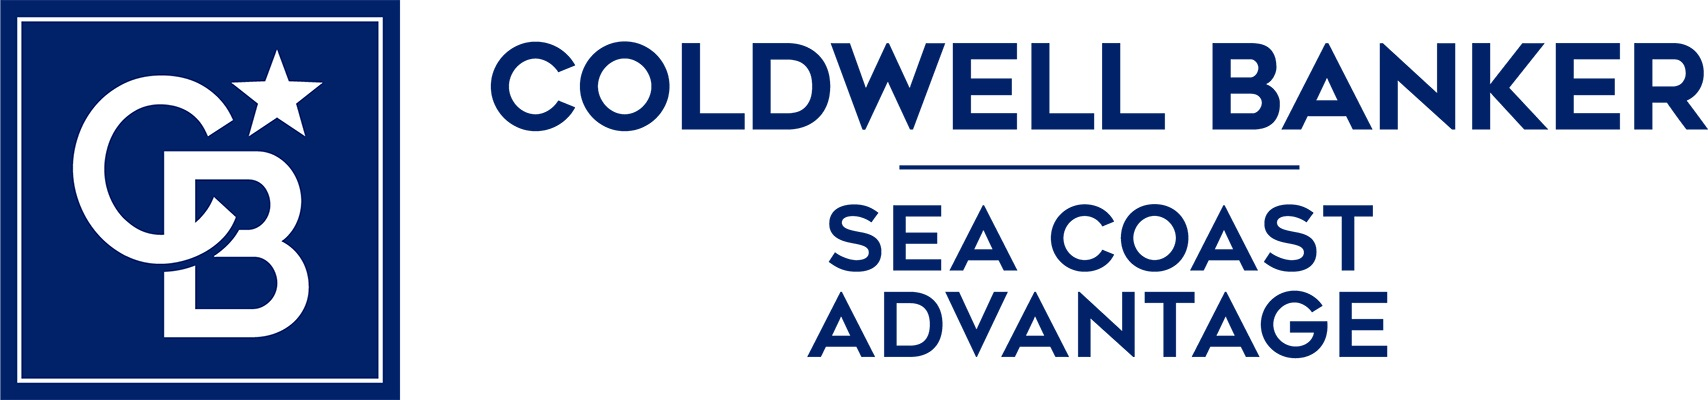 Alia Ahmad - Coldwell Banker Sea Coast Advantage Realty